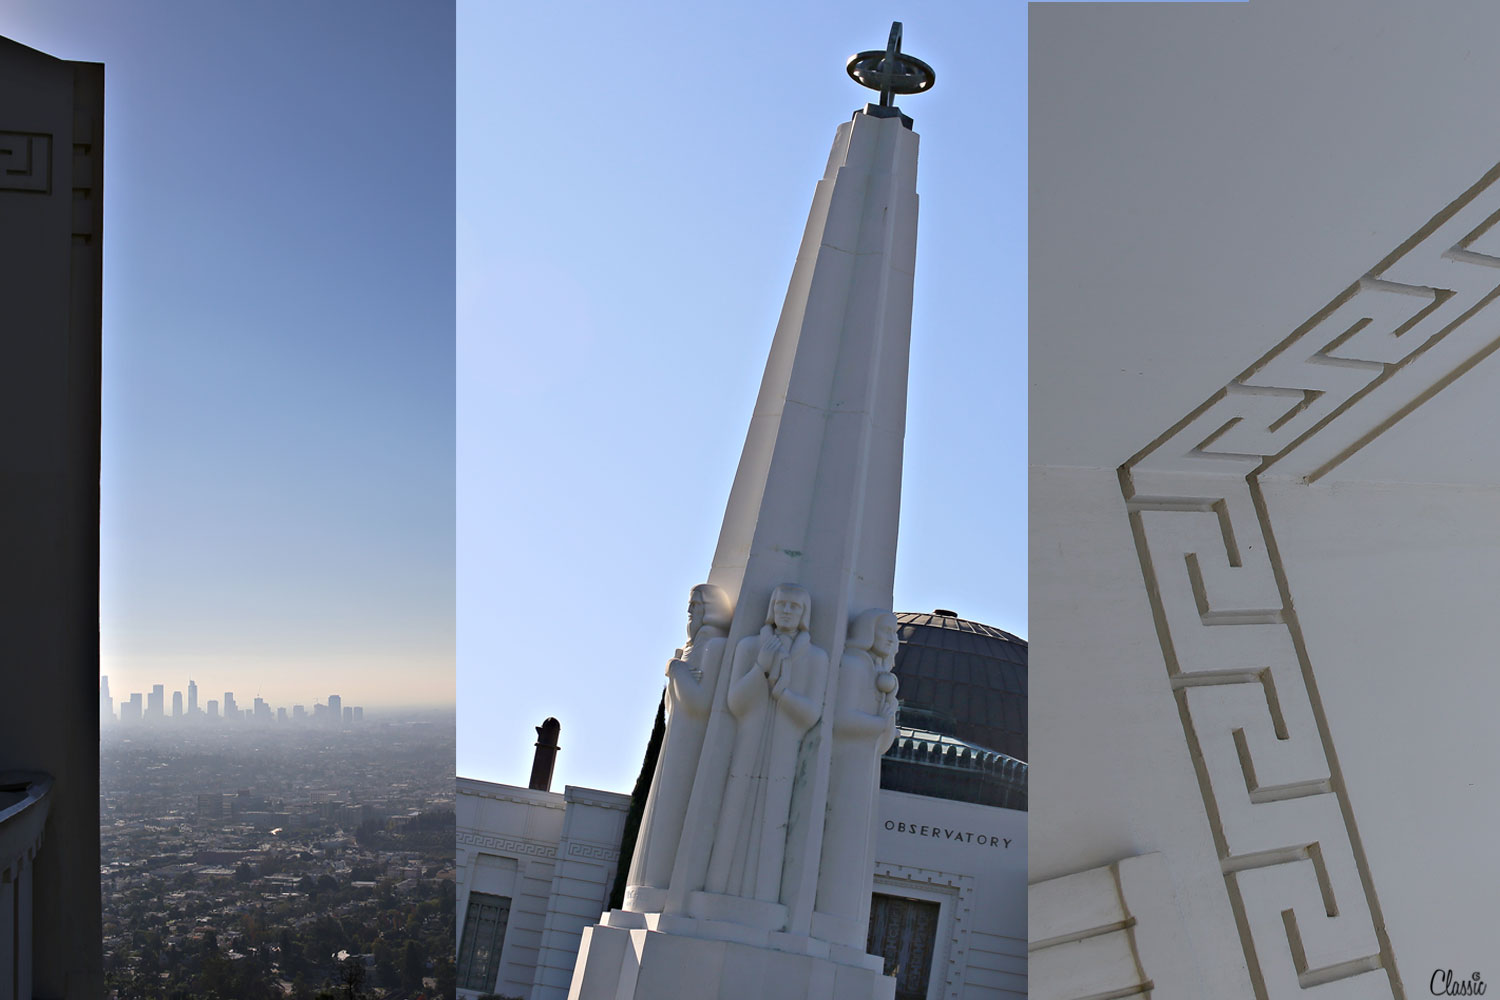 Griffith Observatory and the city CHIARIstyle